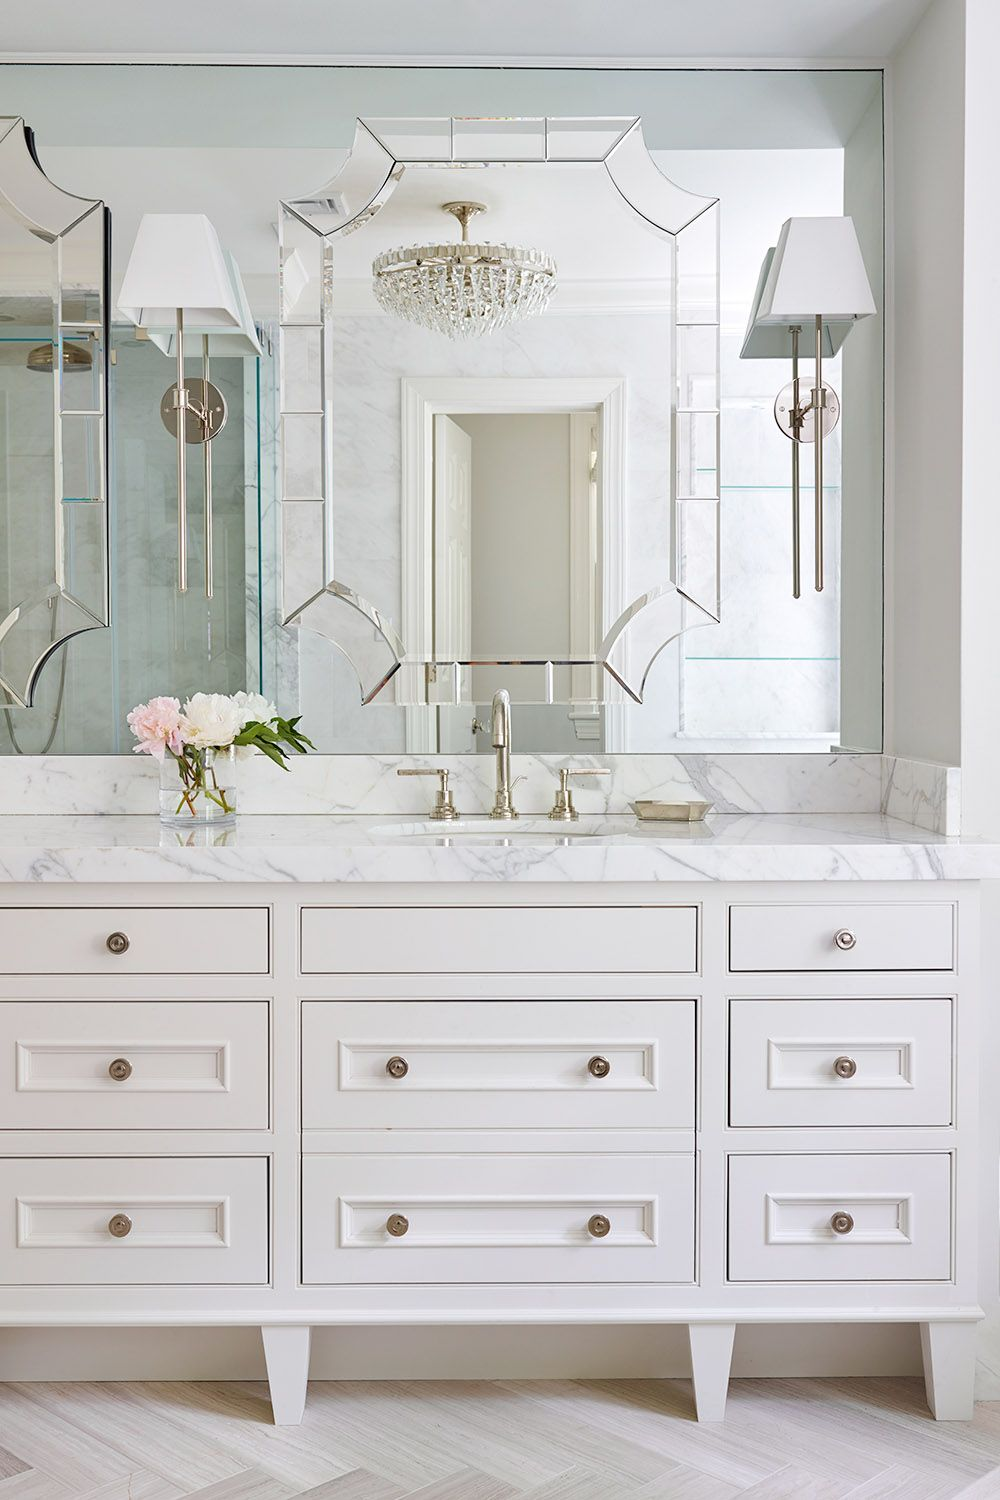 Custom Design Bathrooms Prepossessing Dream Master Bathroom With Custom Designed Furniture Style Vanity Inspiration